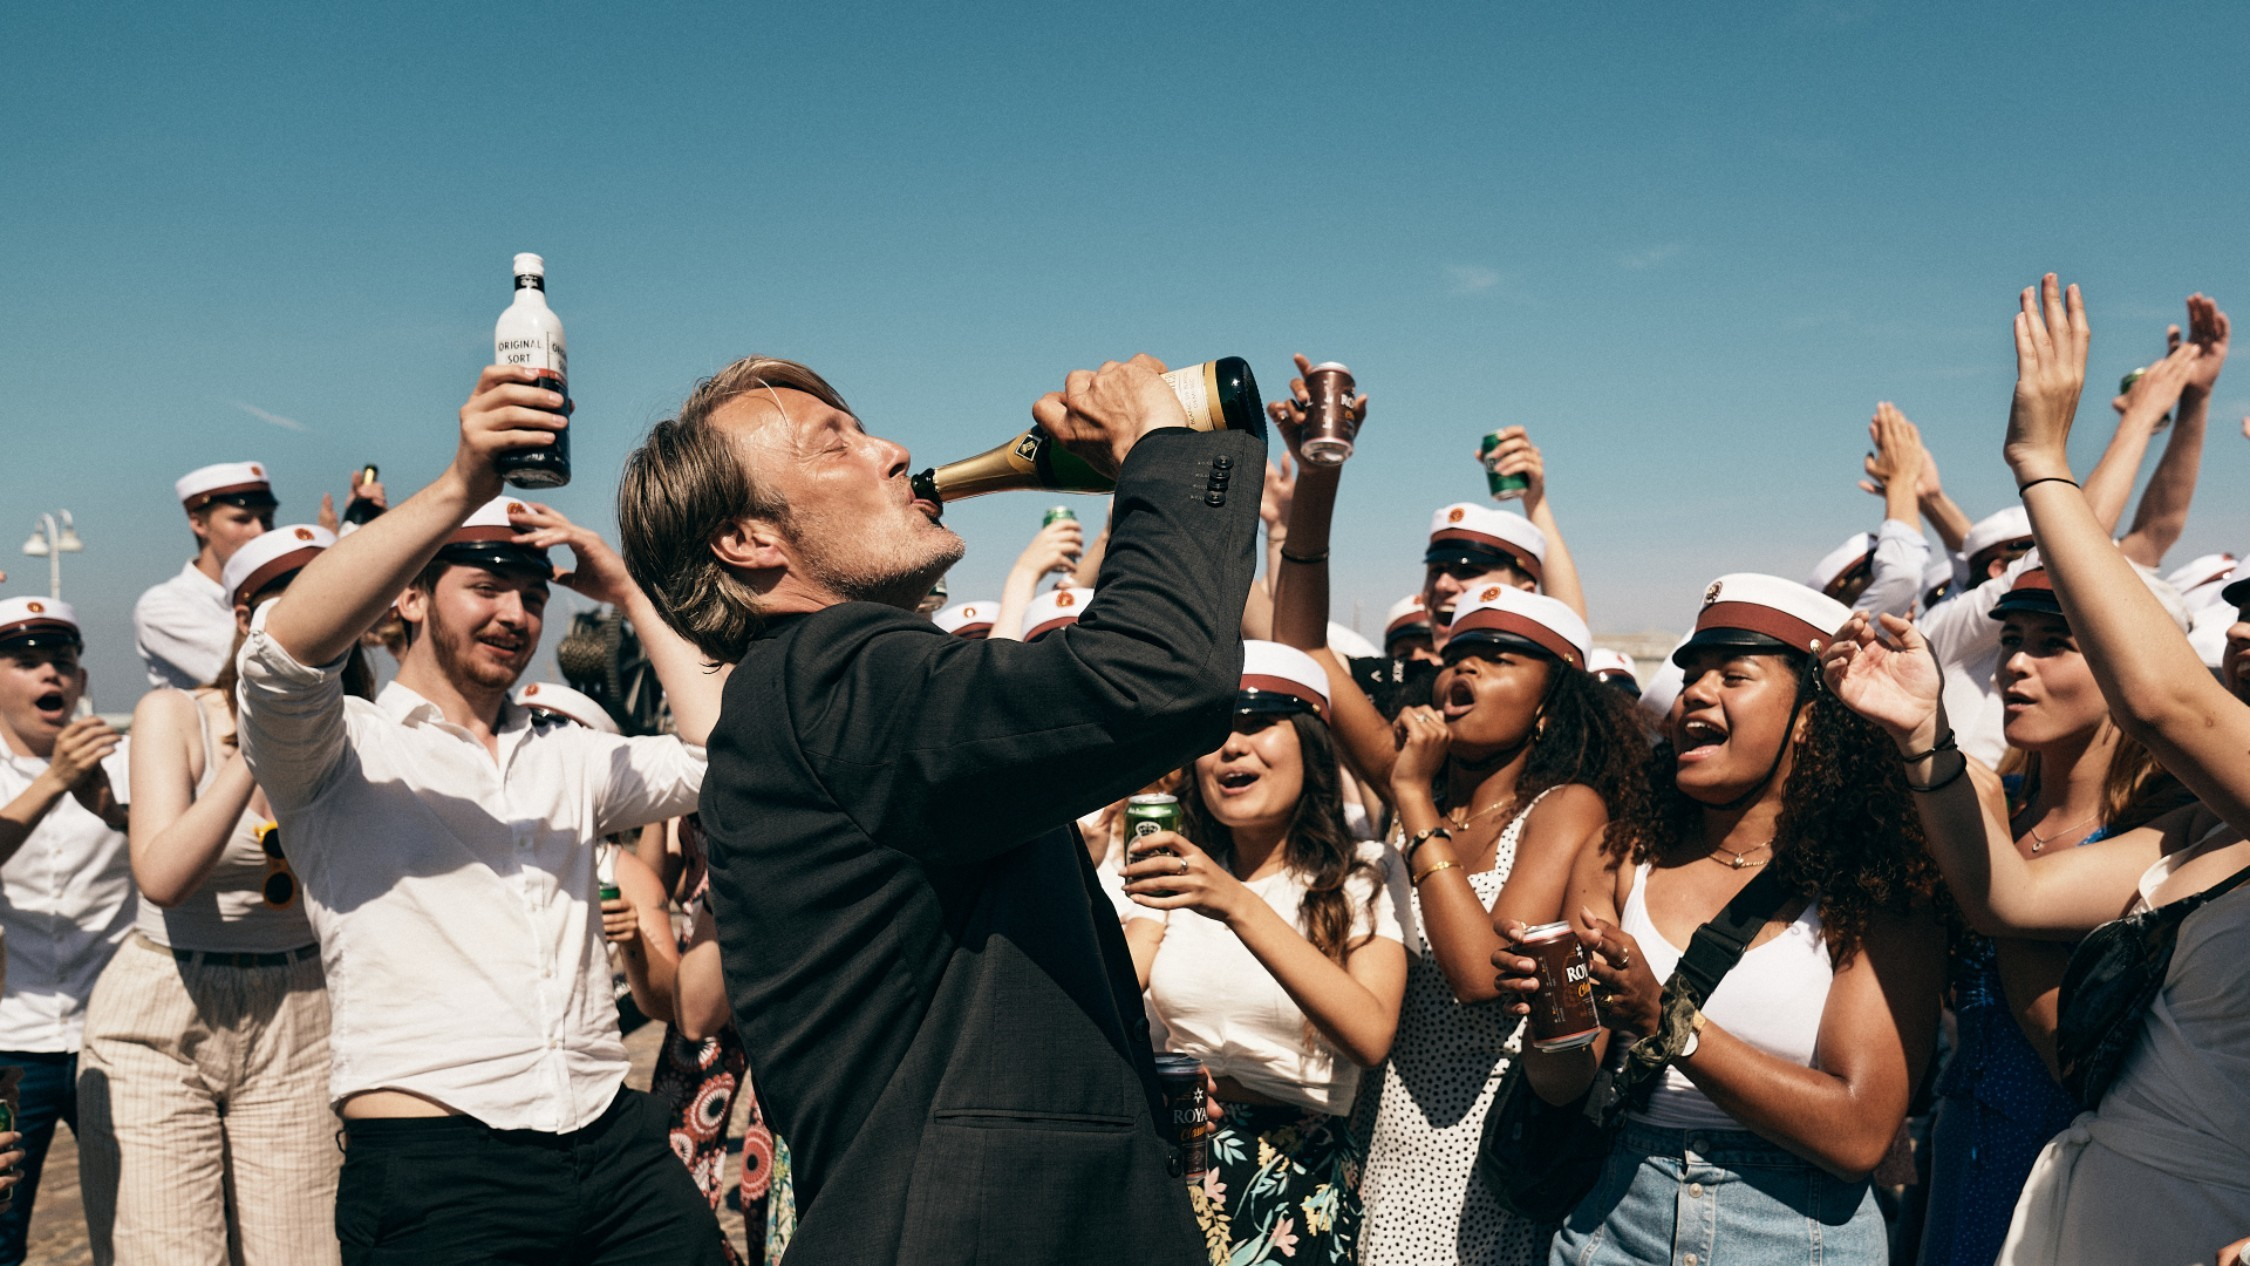 A man drinks from a champagne bottle while drunk teenagers celebrate all around him